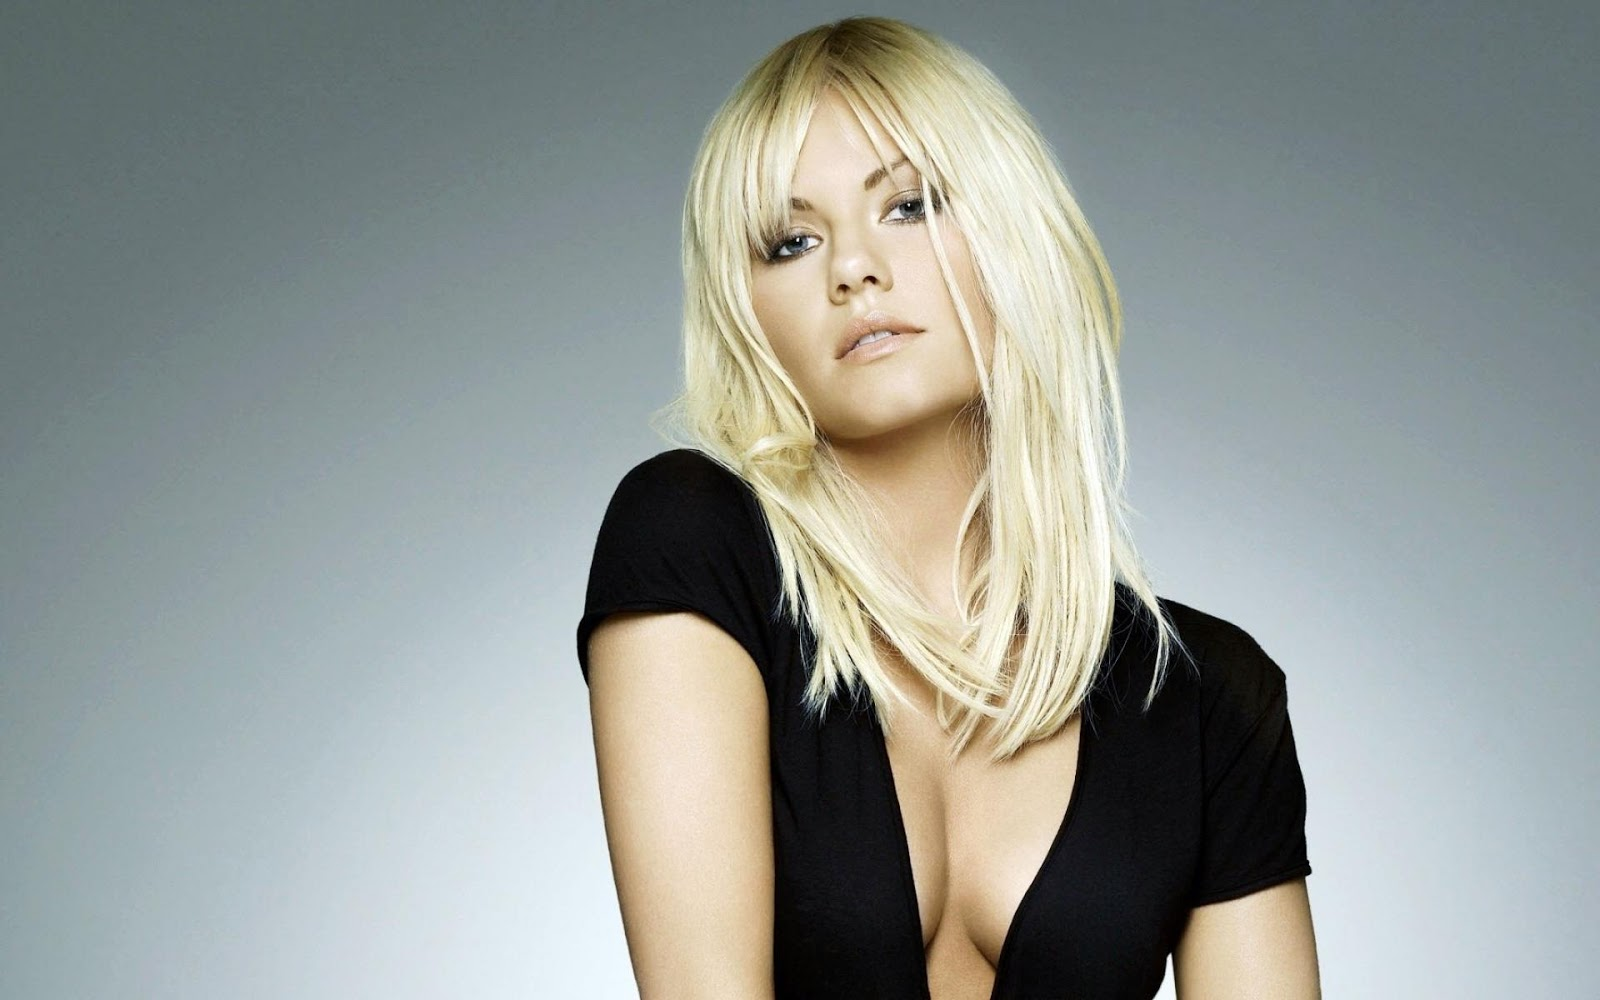 Elisha Cuthbert Free Hd Wallpaper 1080p Joker Wallpaper